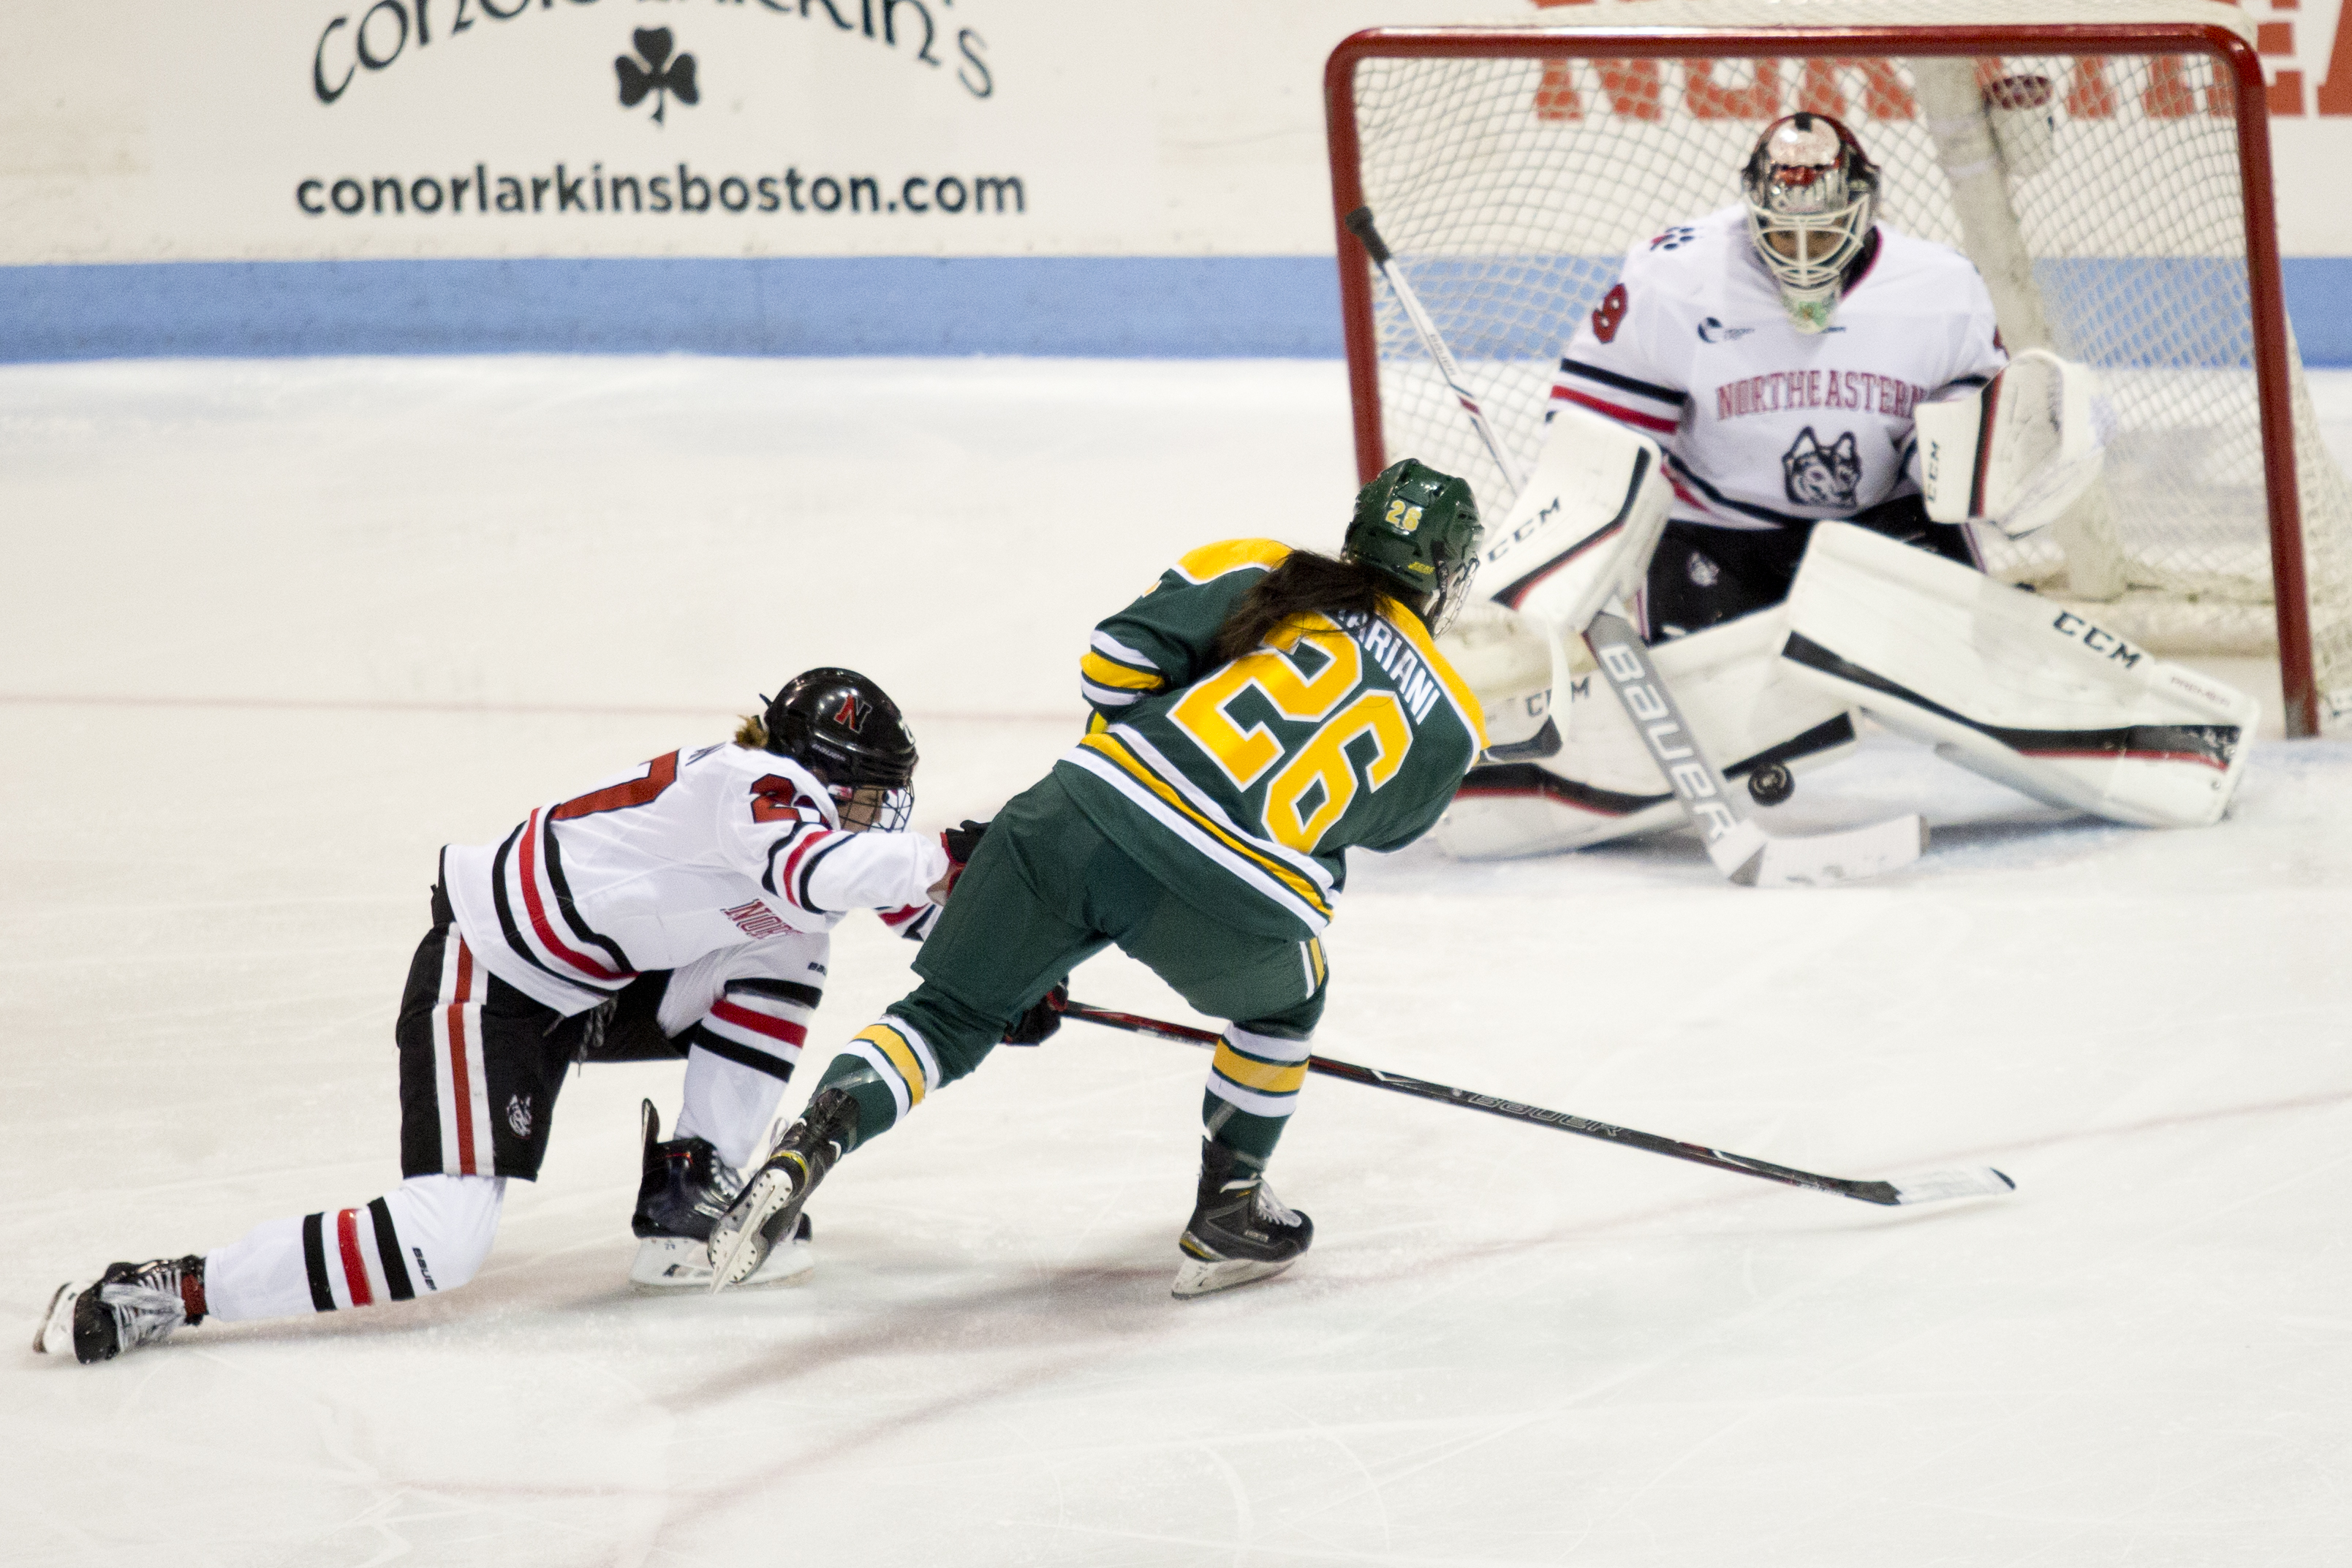 Northeastern And Clarkson Are Playing The First Ever NCAA Women's Hockey Games Outside North America